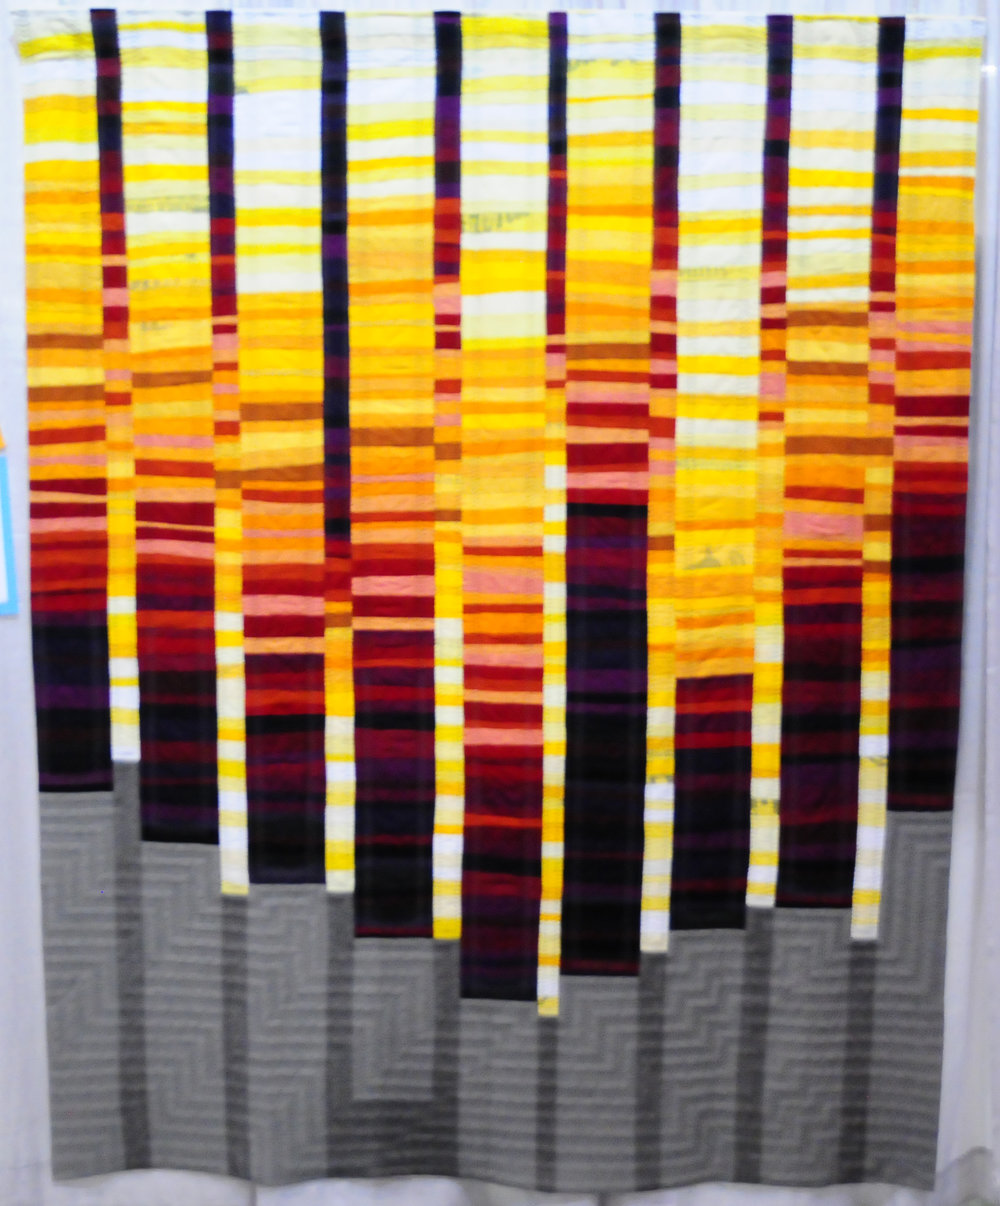 Quilt no.019: (Of Discontent) by Shelby Skumanich ( @godshomemovies ), Second Place in Handwork